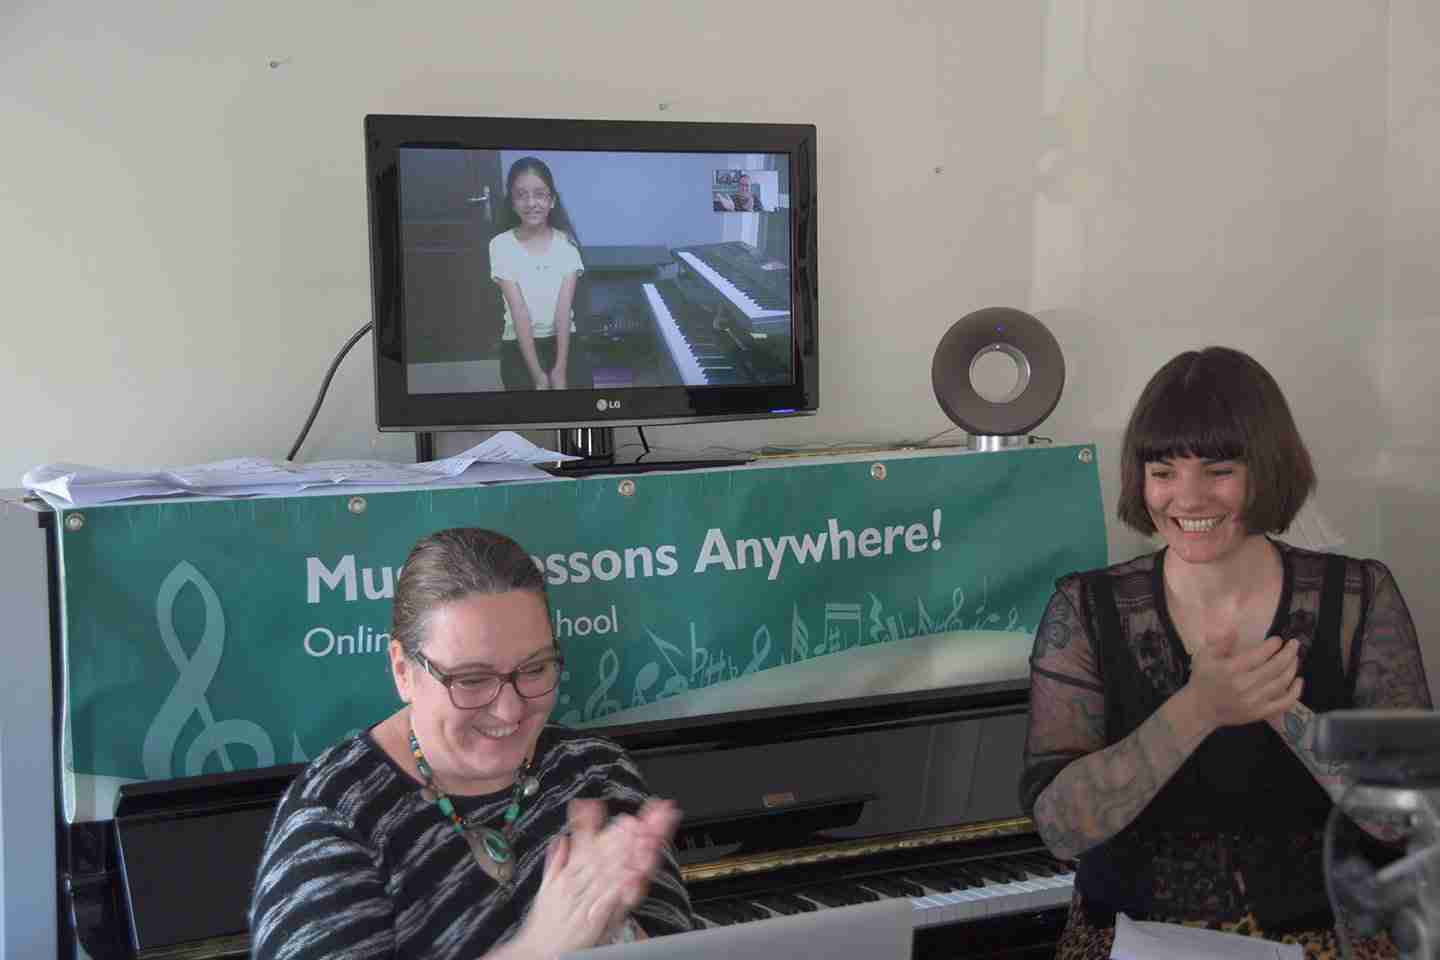 39-music-lessons-anywhere-online-music-lessons-concert-2018